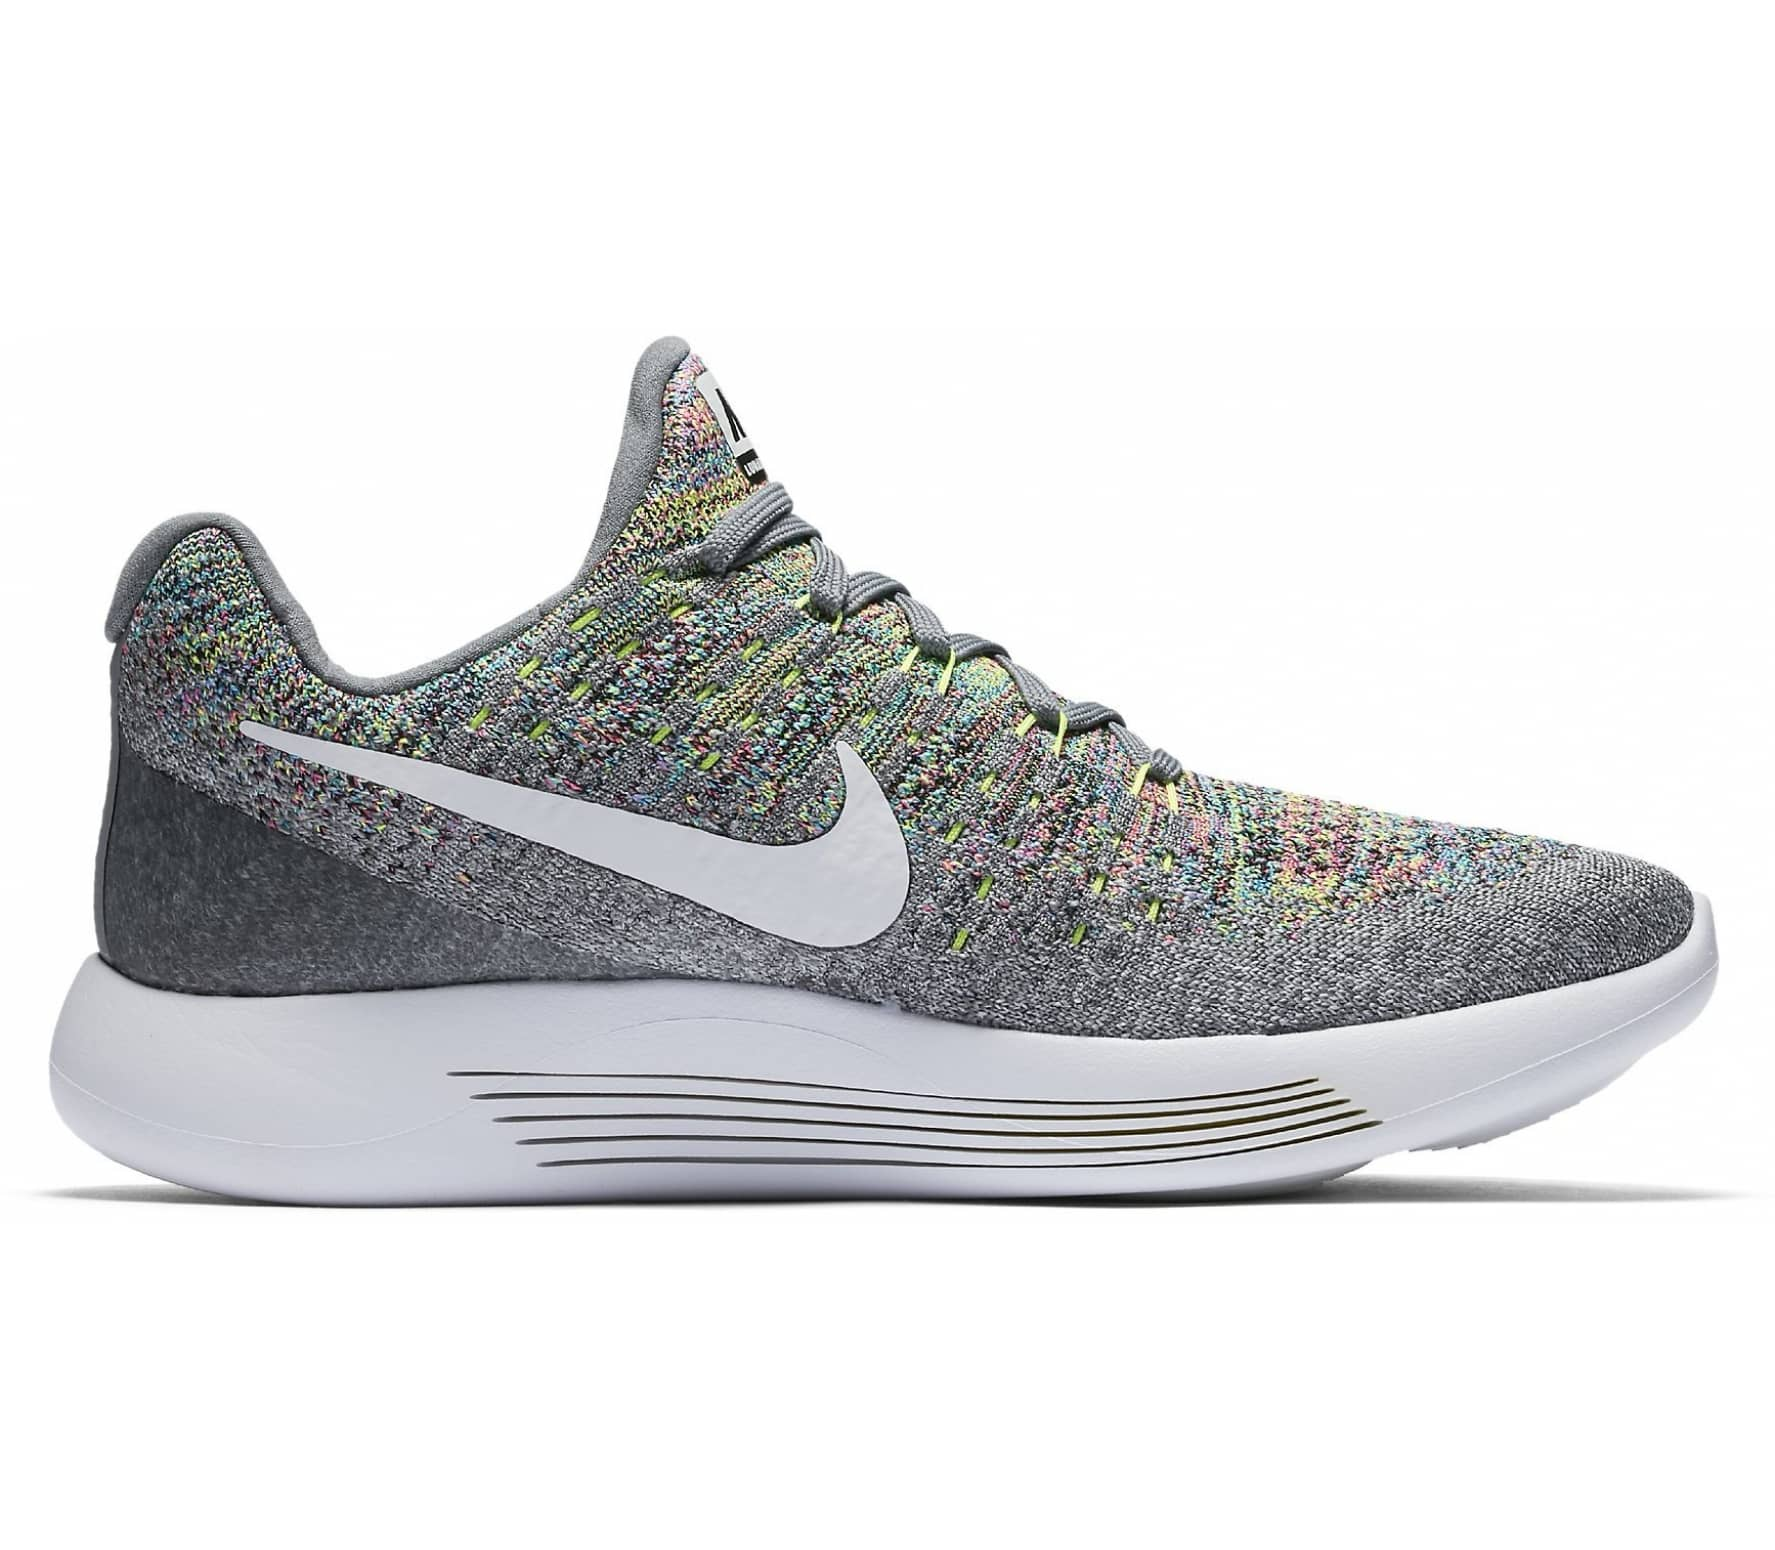 finest selection 3296c 8643f Nike - LunarEpic Low Flyknit 2 women s running shoes (grey yellow)